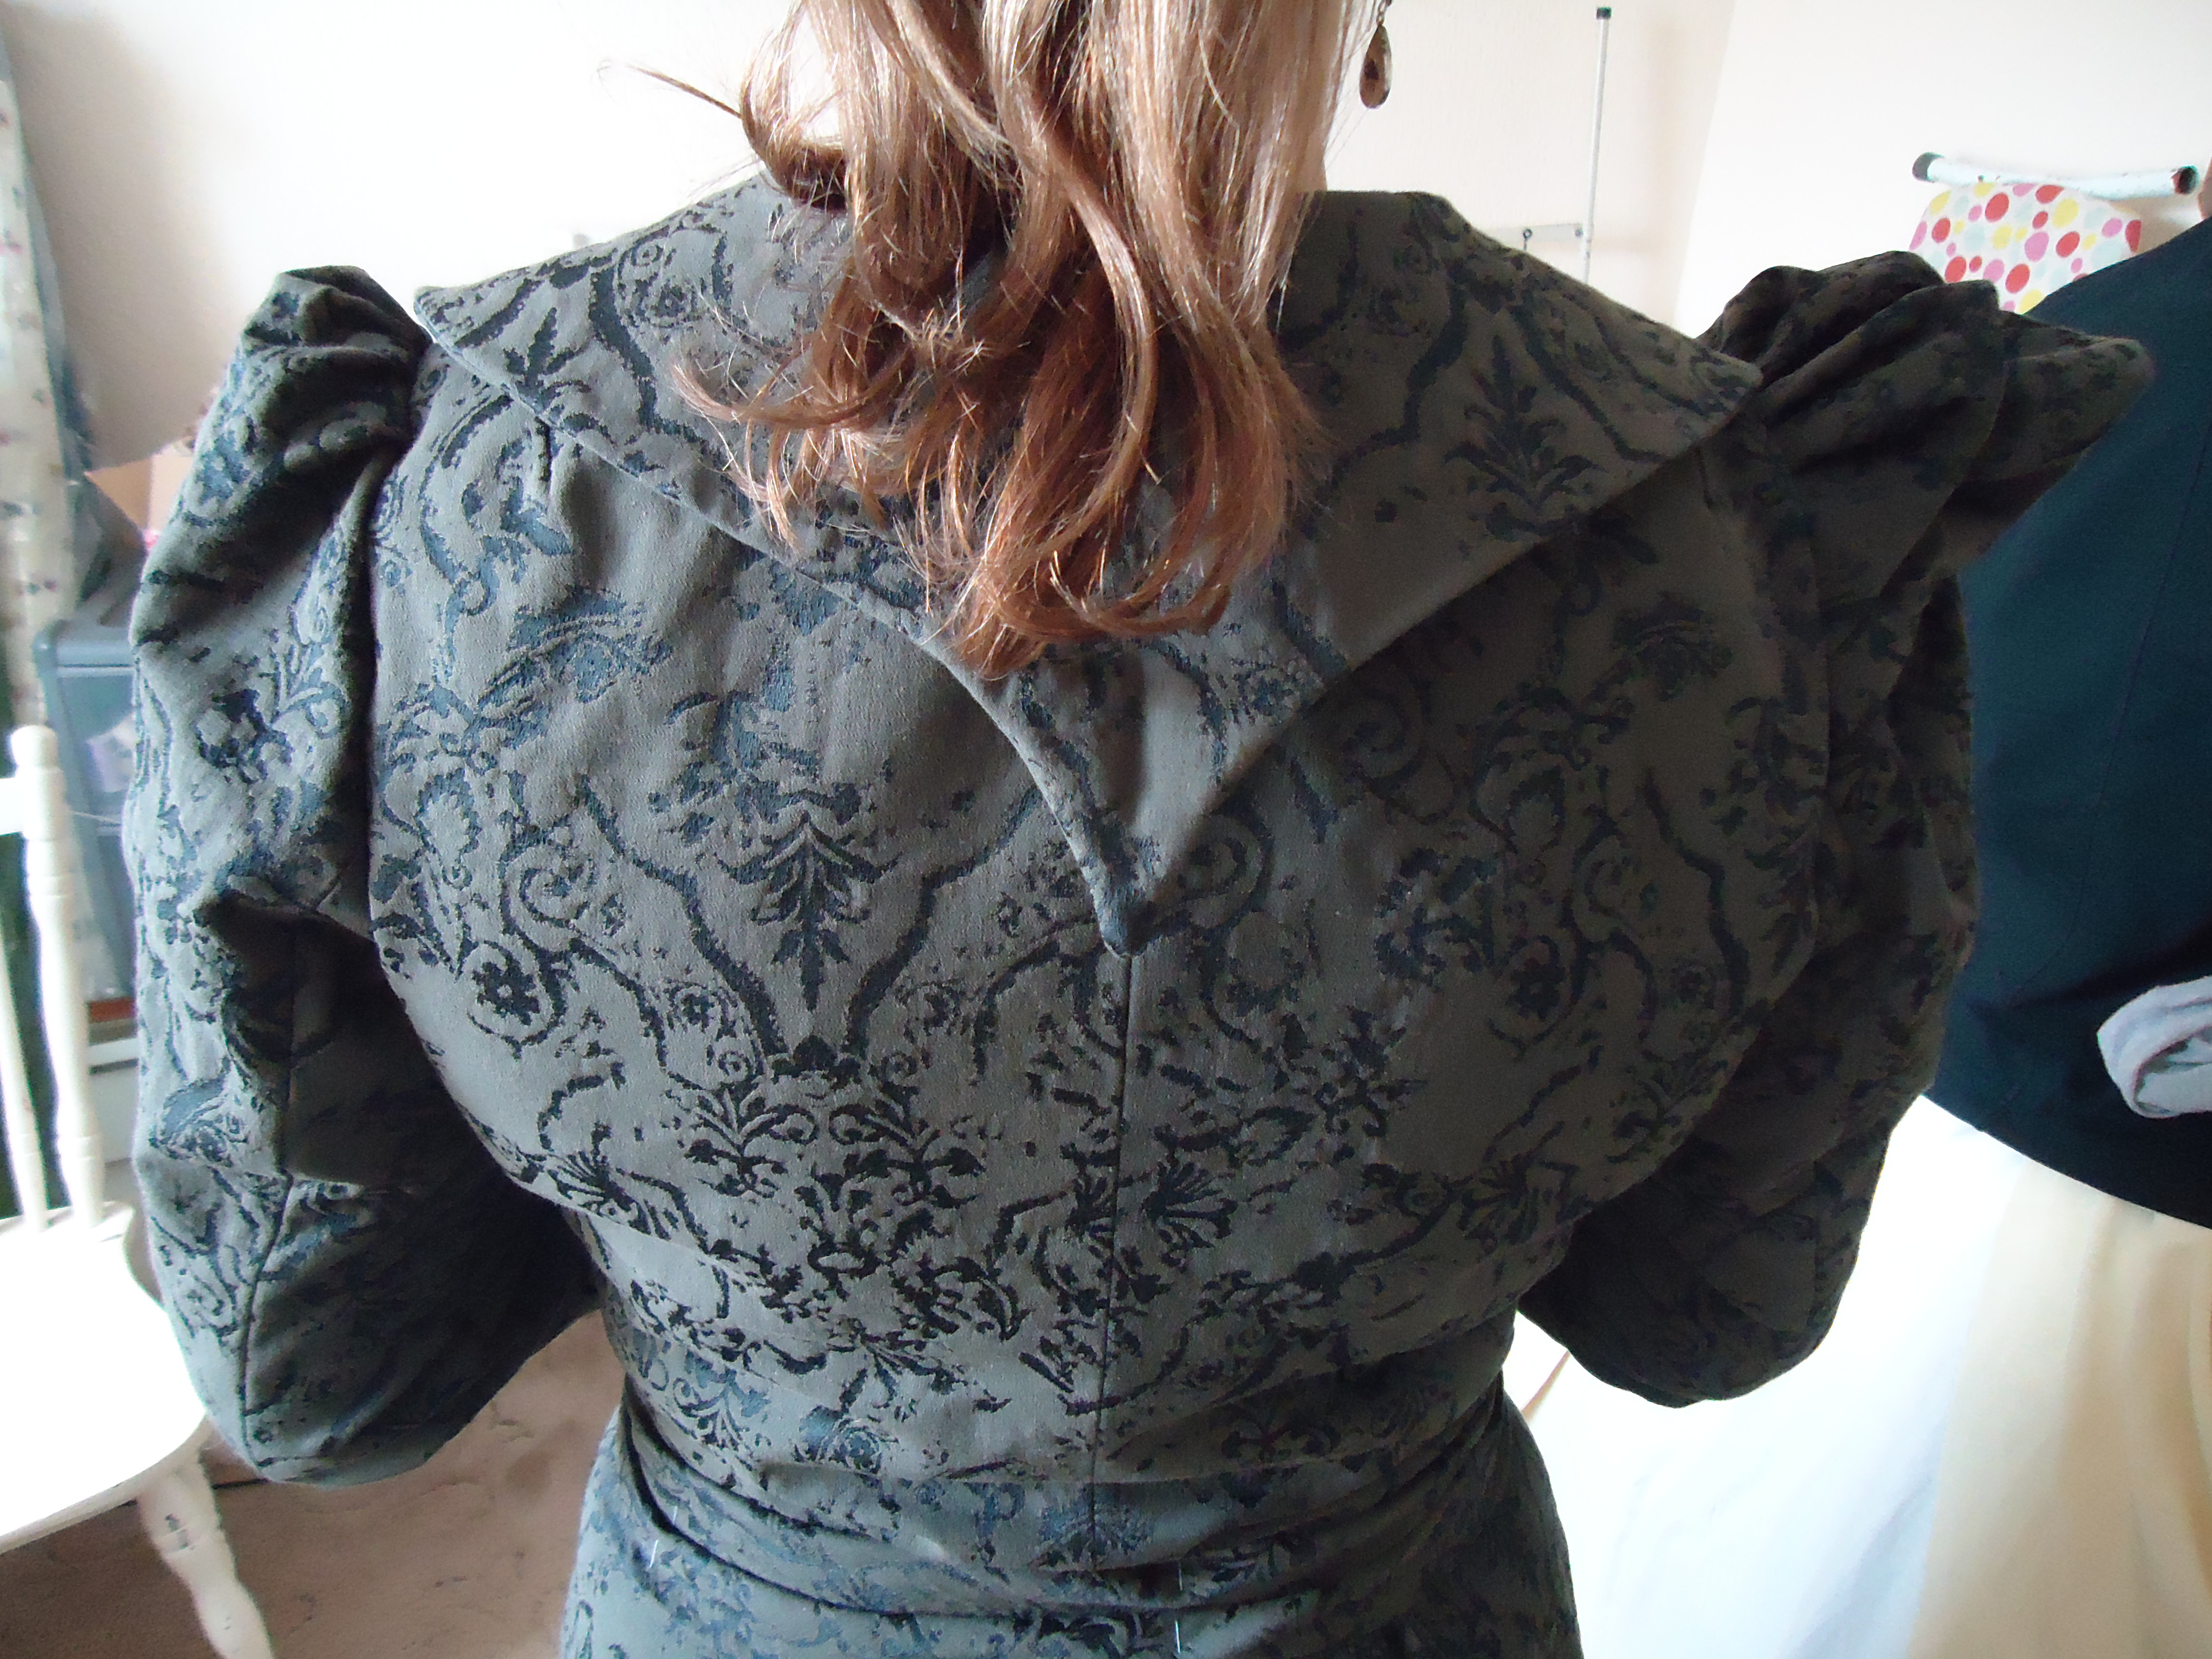 Late Victorian Suit by HandBound Costumes - Fitting Back View,  Replica Costumes, Made to measure Historical Costumes, Reproduction Period Clothing and costumes, copying garments dresses cloaks gowns from paintings or costumes in museums, victorian costume, edwardian costume, bespoke period costume, civil war made-to-measure dresses,